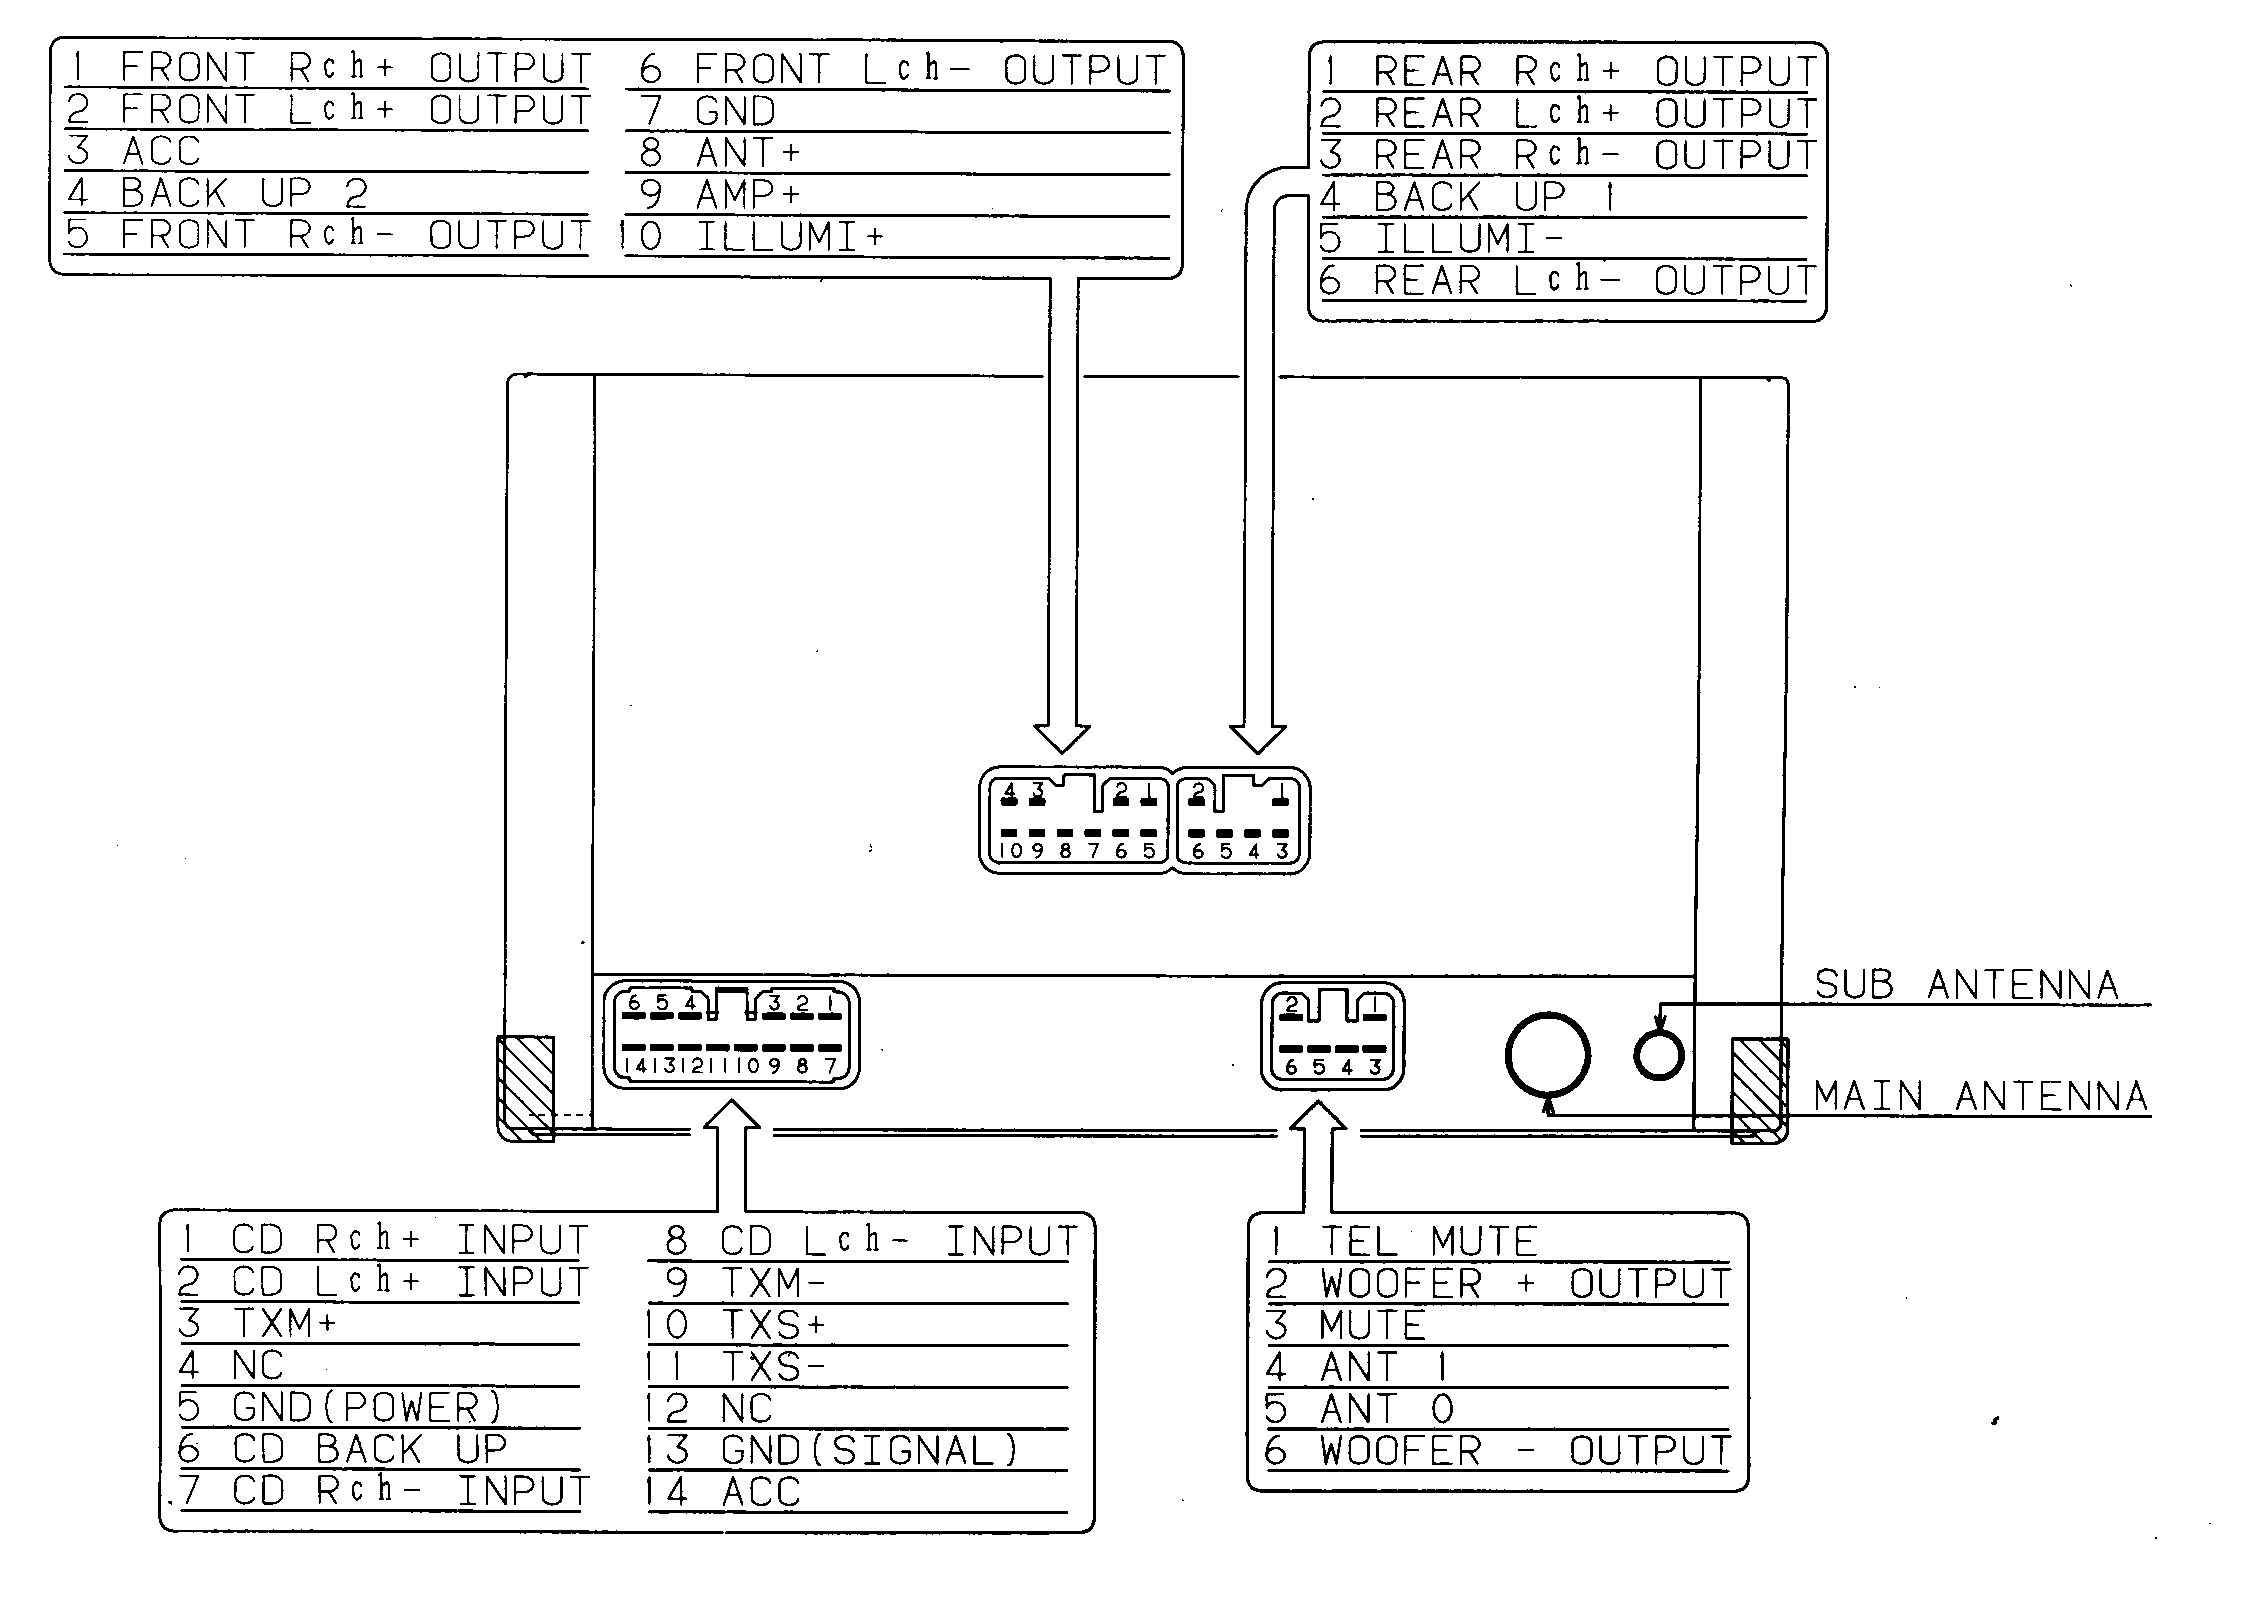 WireHarnessLexus121001 car cd player wiring diagram how to connect car stereo wires Jeep Wire Harness Connectors at bakdesigns.co